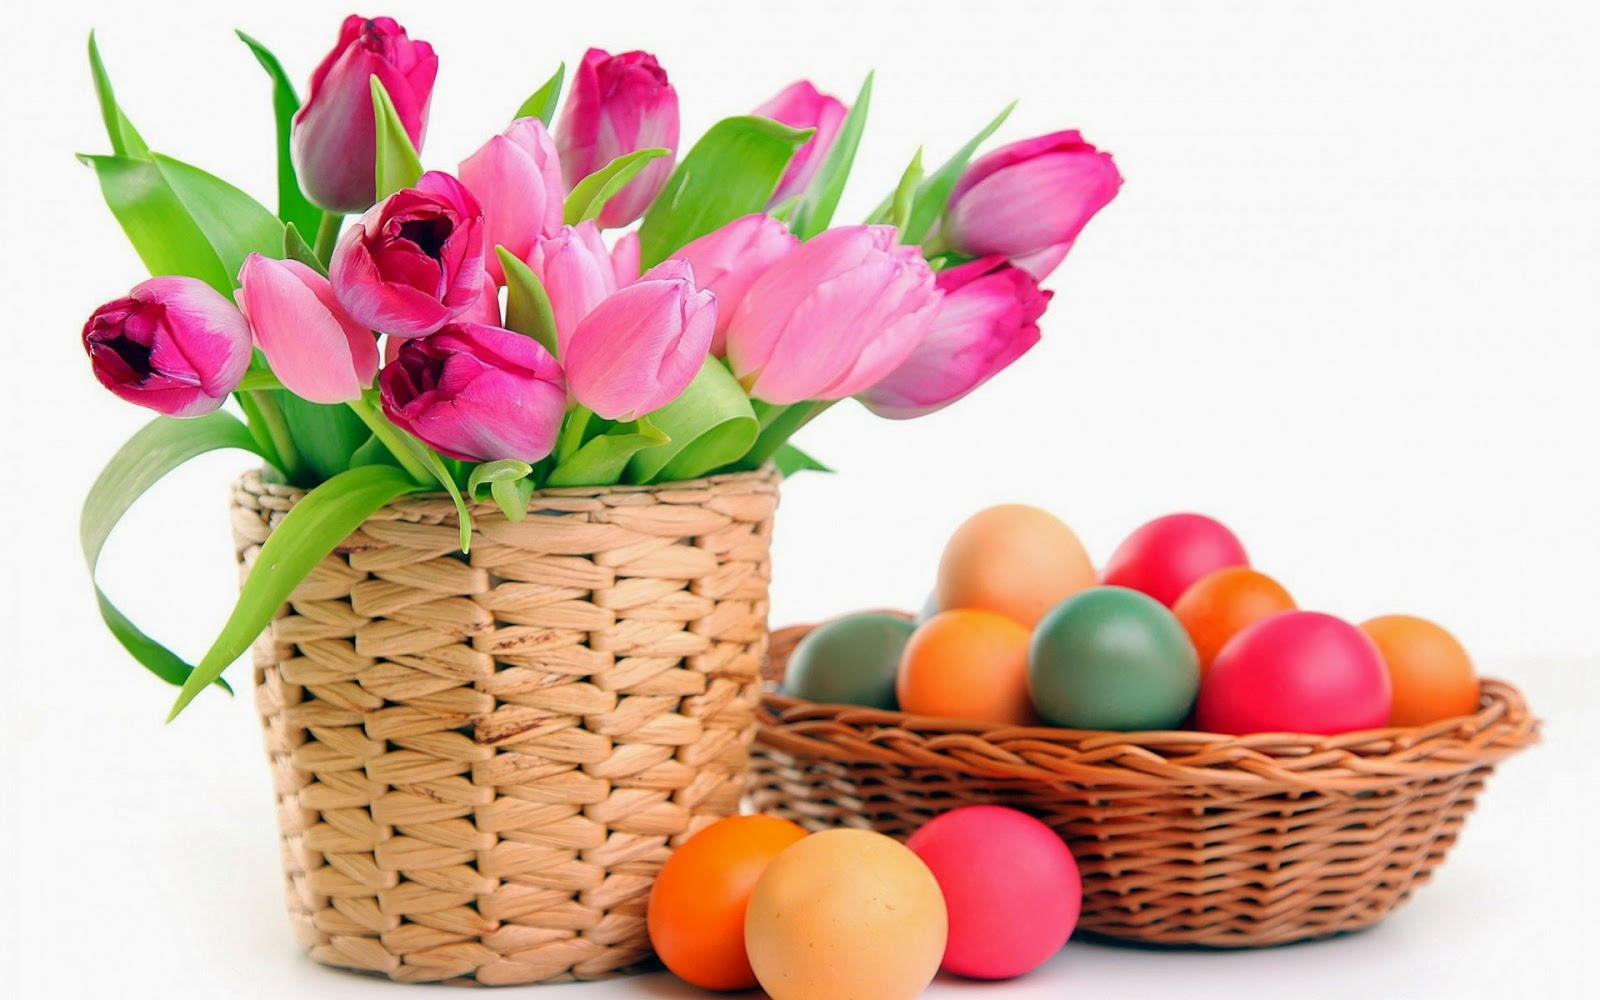 Easter 2015 dates